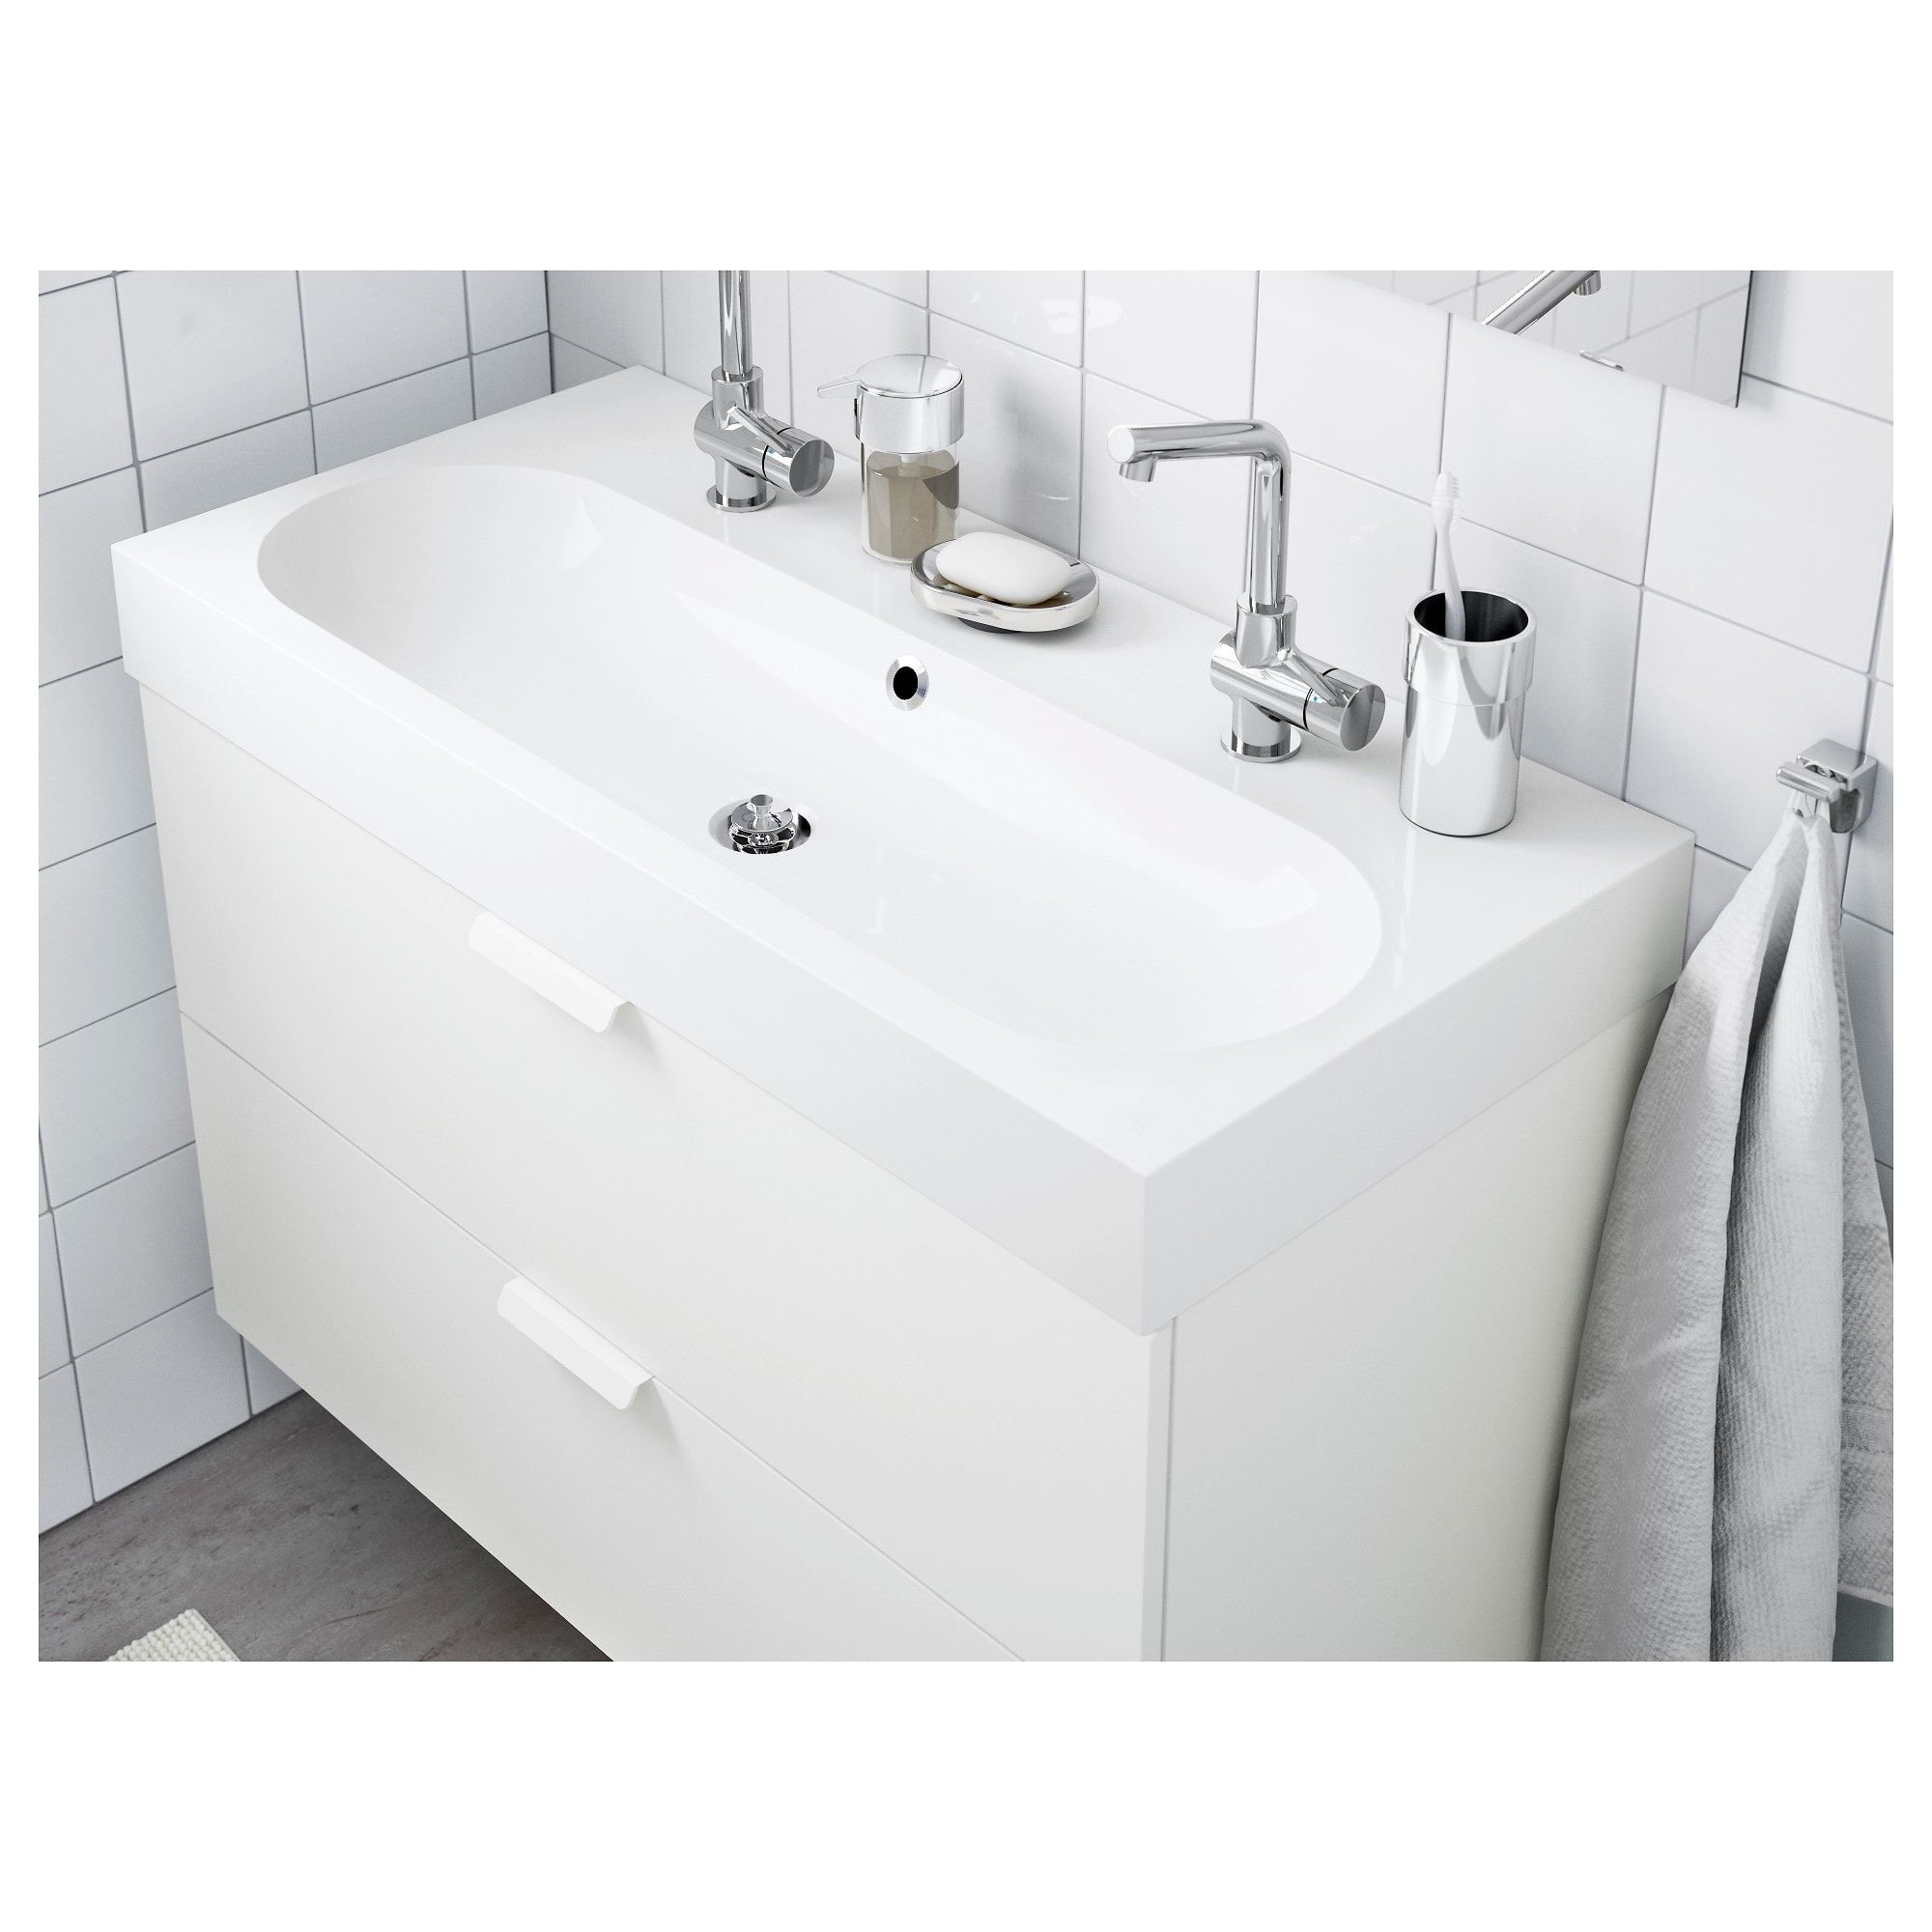 Braviken Sink White 39 3 8x18 7 8x3 7 8 Small Double Sink Vanity Sink Small Bathroom